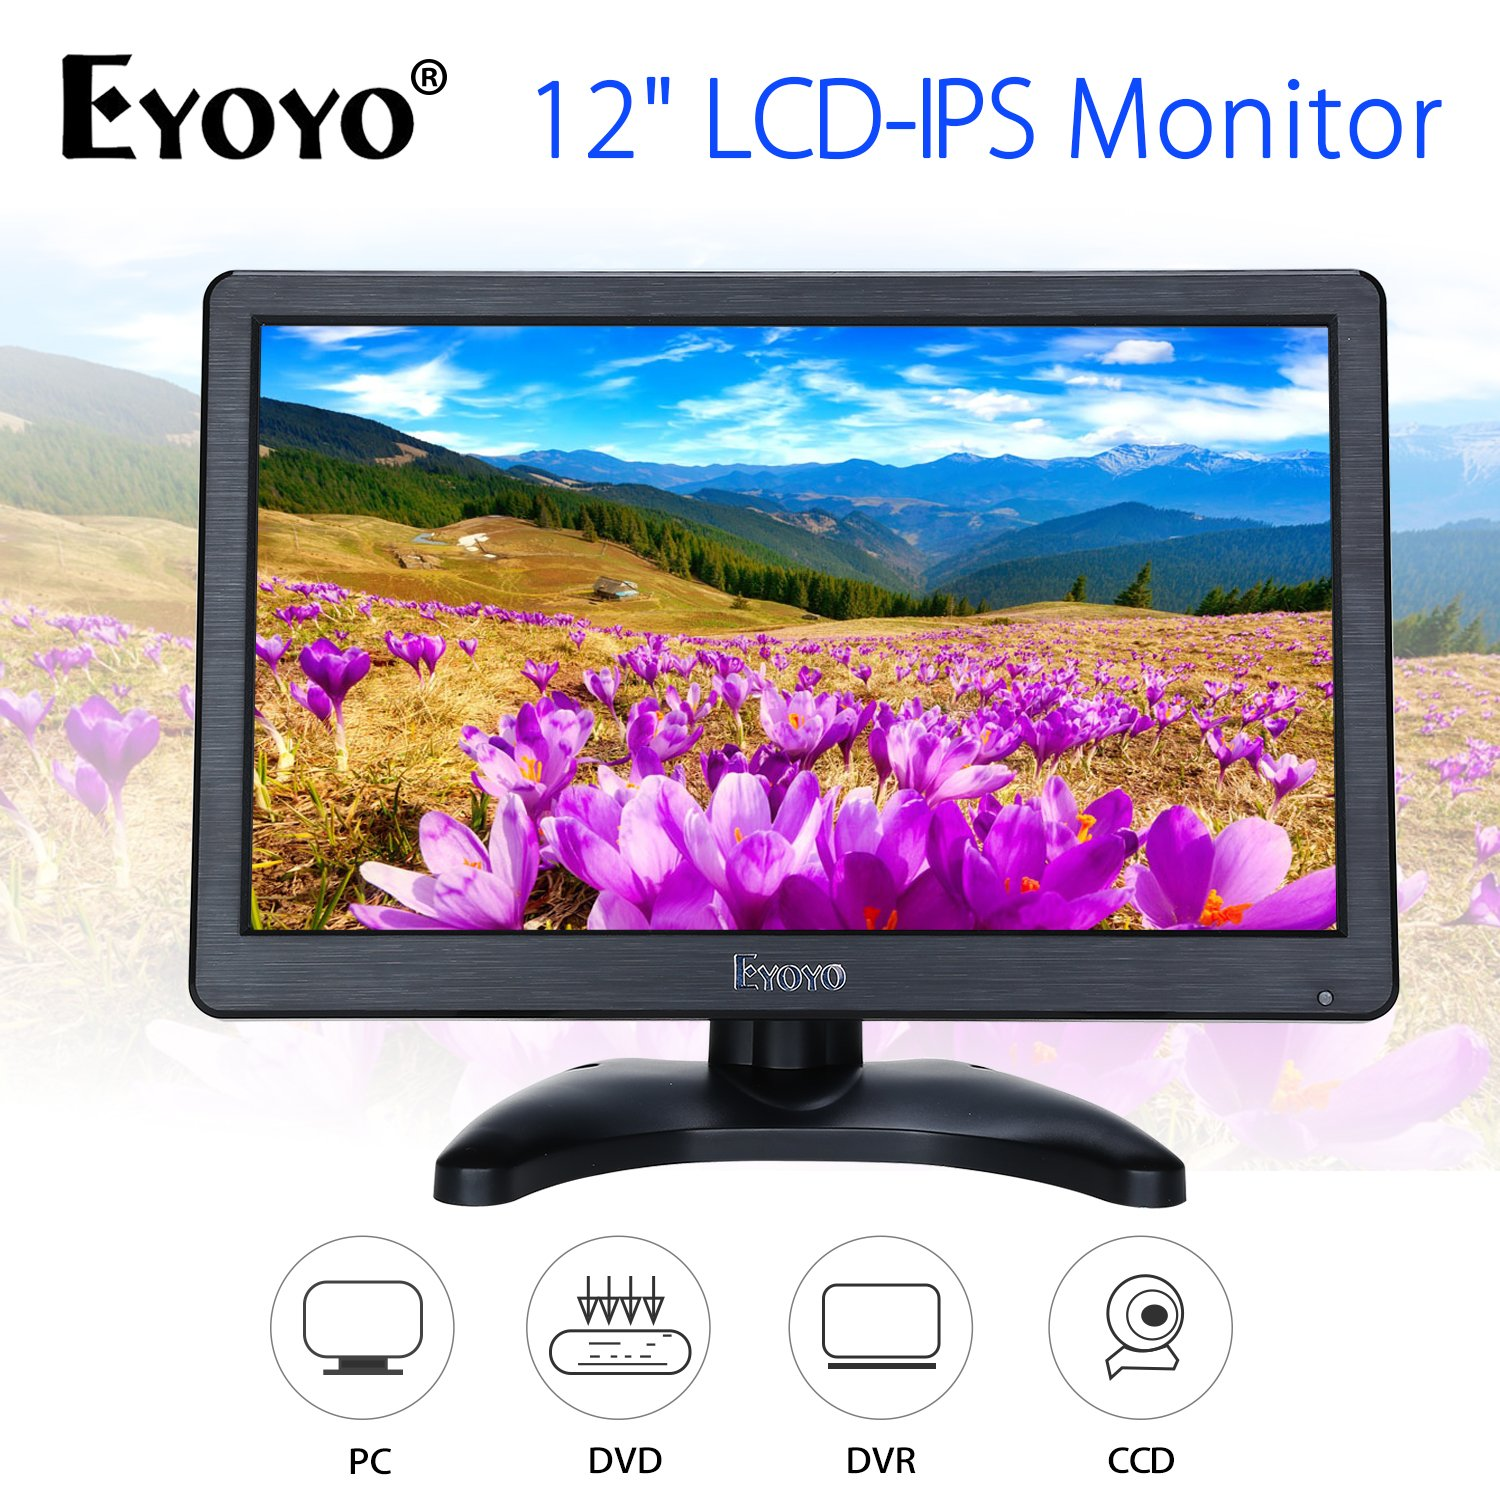 Eyoyo 12 inch HD 1920x1080 IPS LCD HDMI Monitor Screen Input Audio Video Display with BNC Cable for PC Computer Camera DVD Security CCTV DVR Home Office Surveillance by Eyoyo